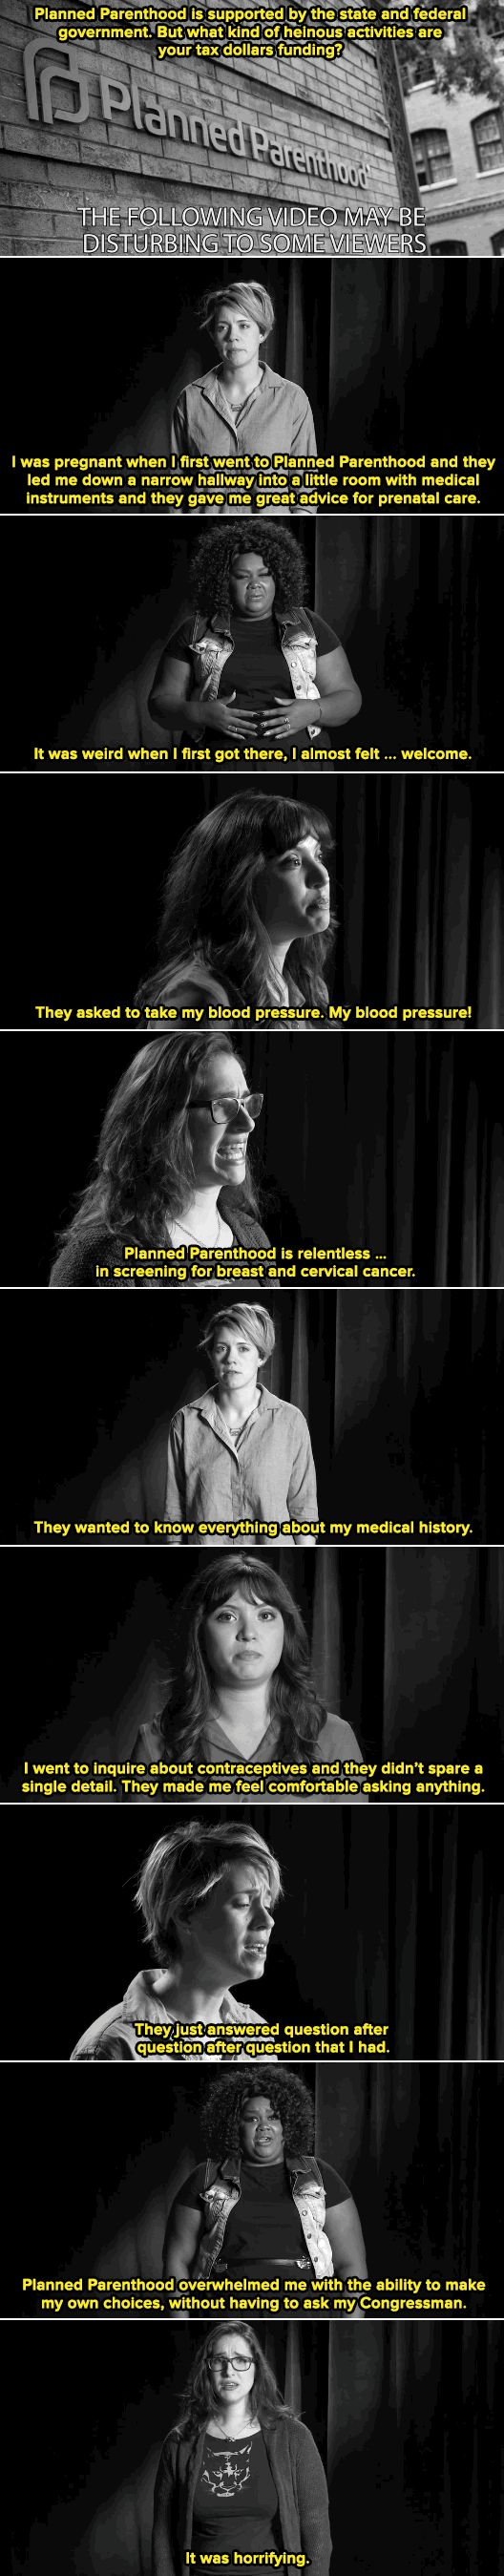 """""""Planned Parenthood overwhelmed me with the ability to make my own choices, without having to ask my Congressman"""""""